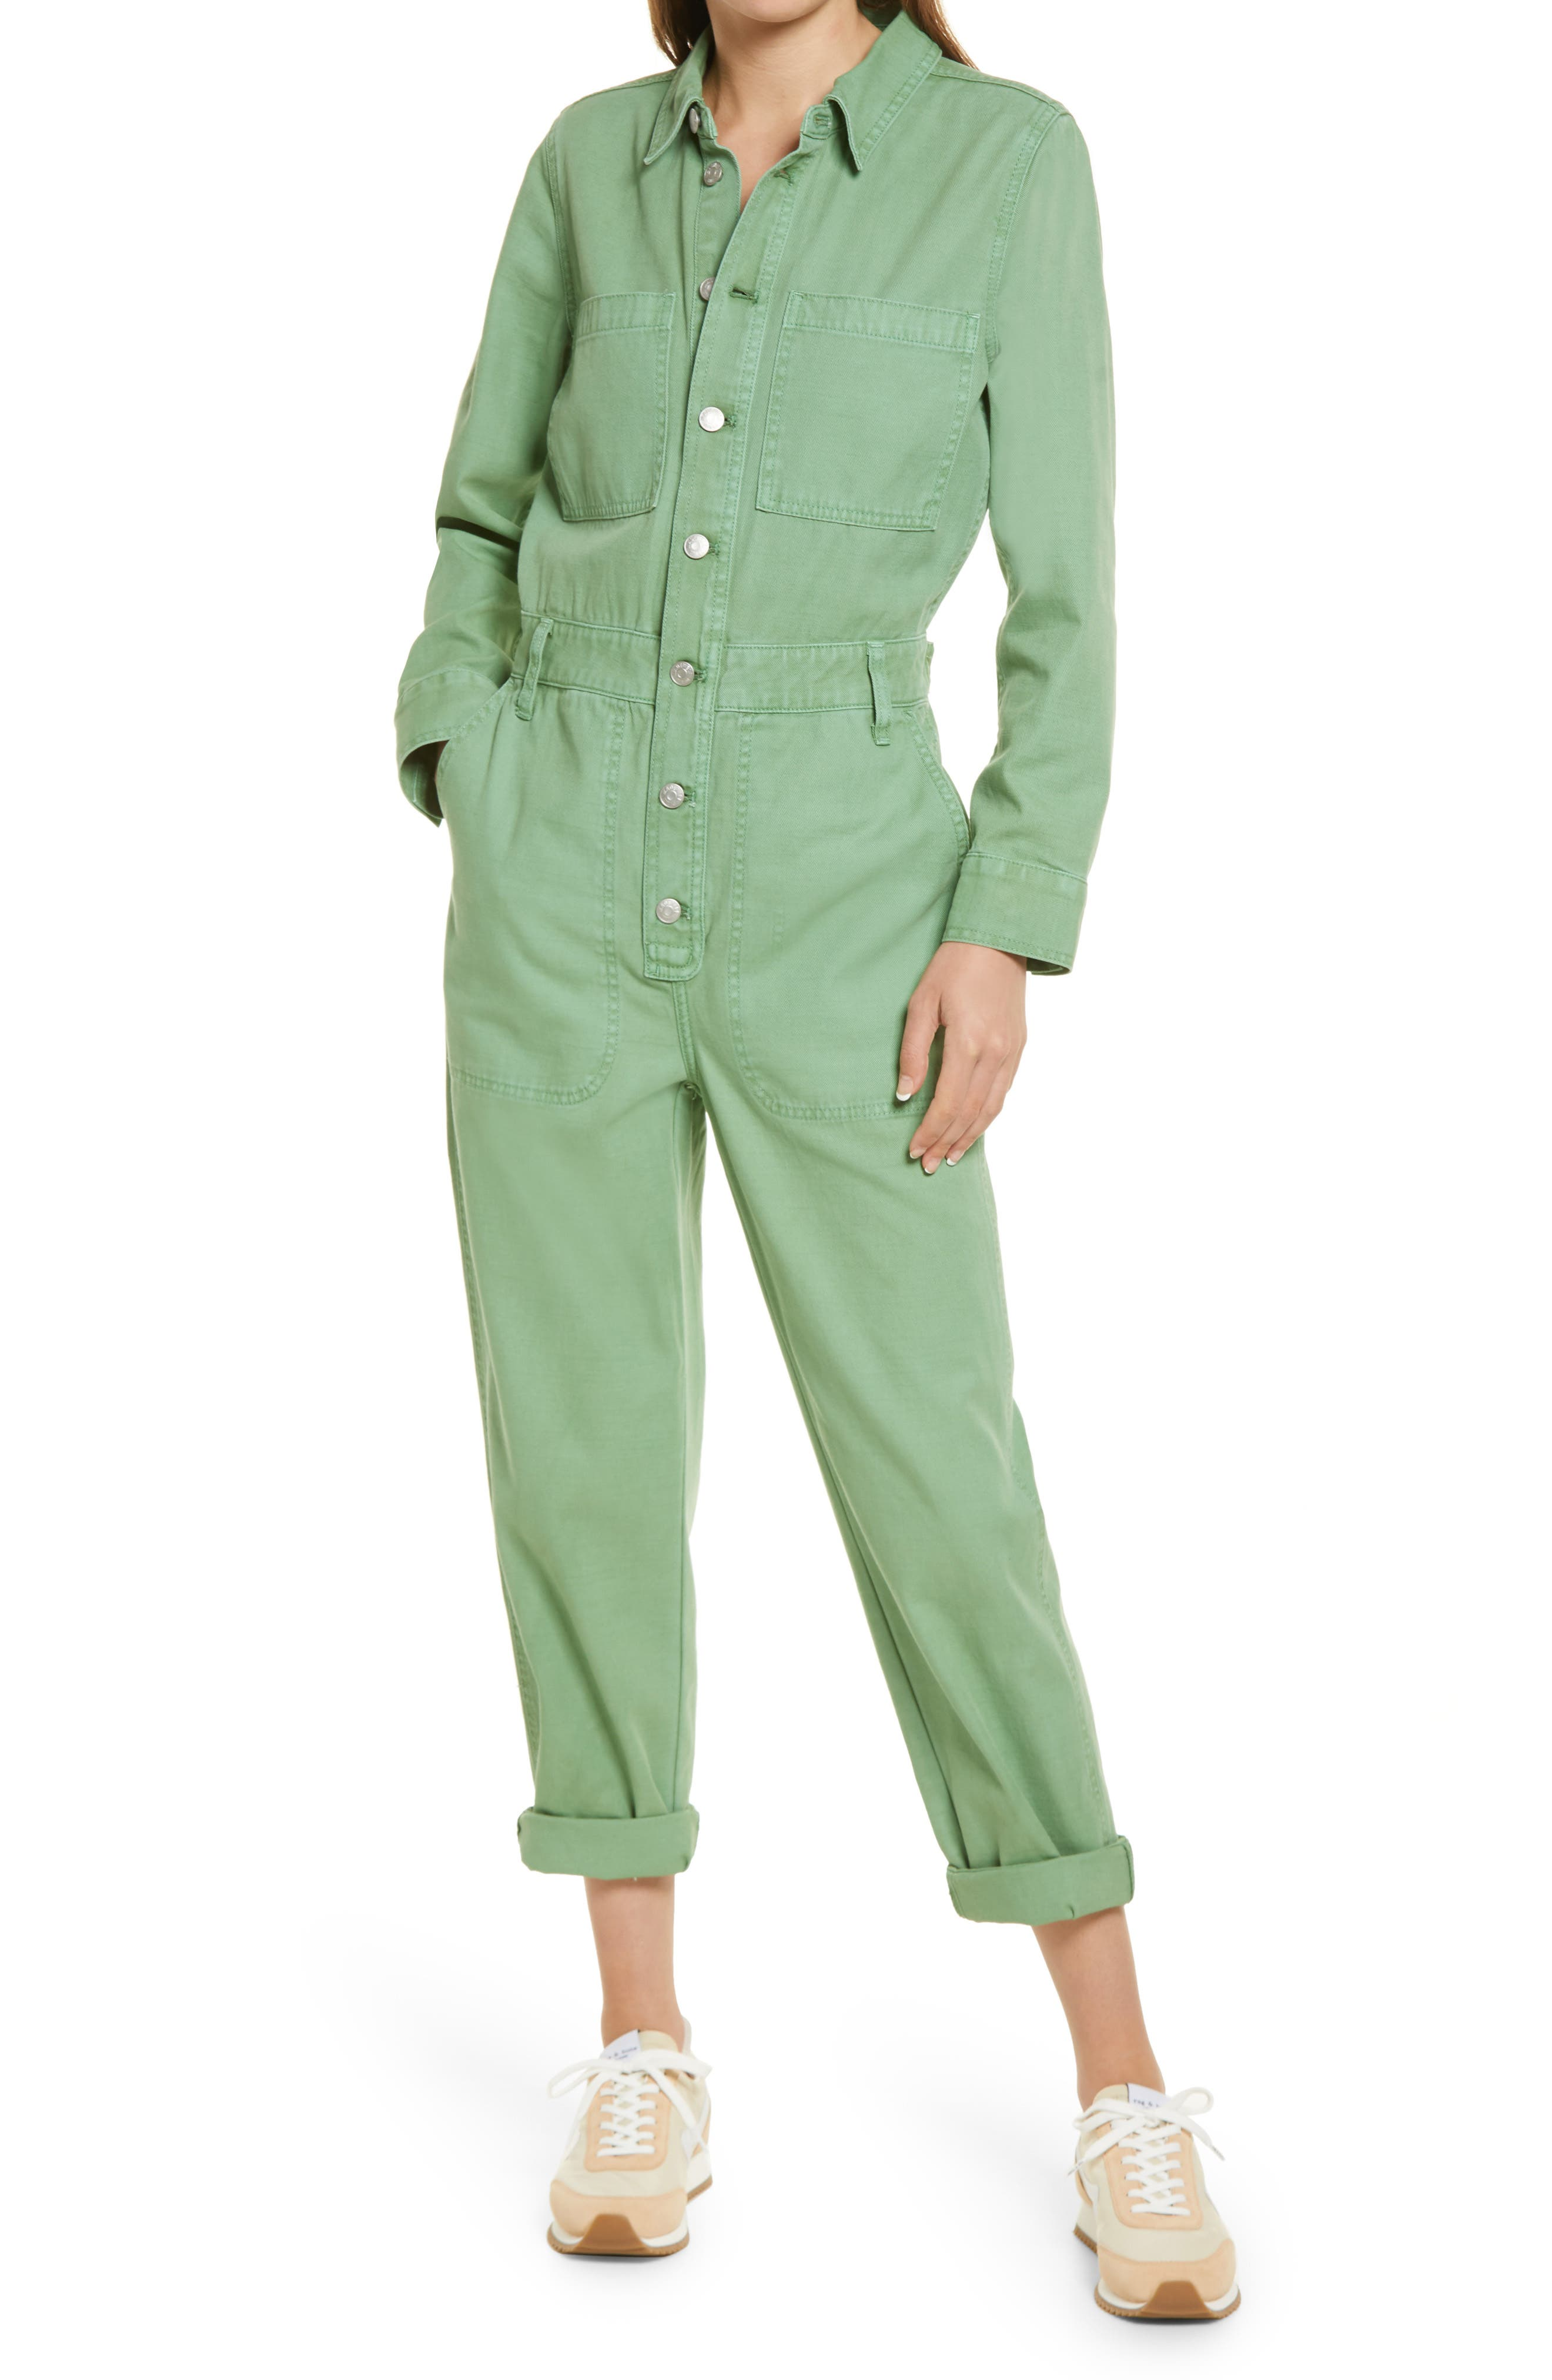 Vintage Overalls & Jumpsuits Womens Madewell Womens Garment Dyed Relaxed Coverall Jumpsuit Size Large - Ivory $148.00 AT vintagedancer.com